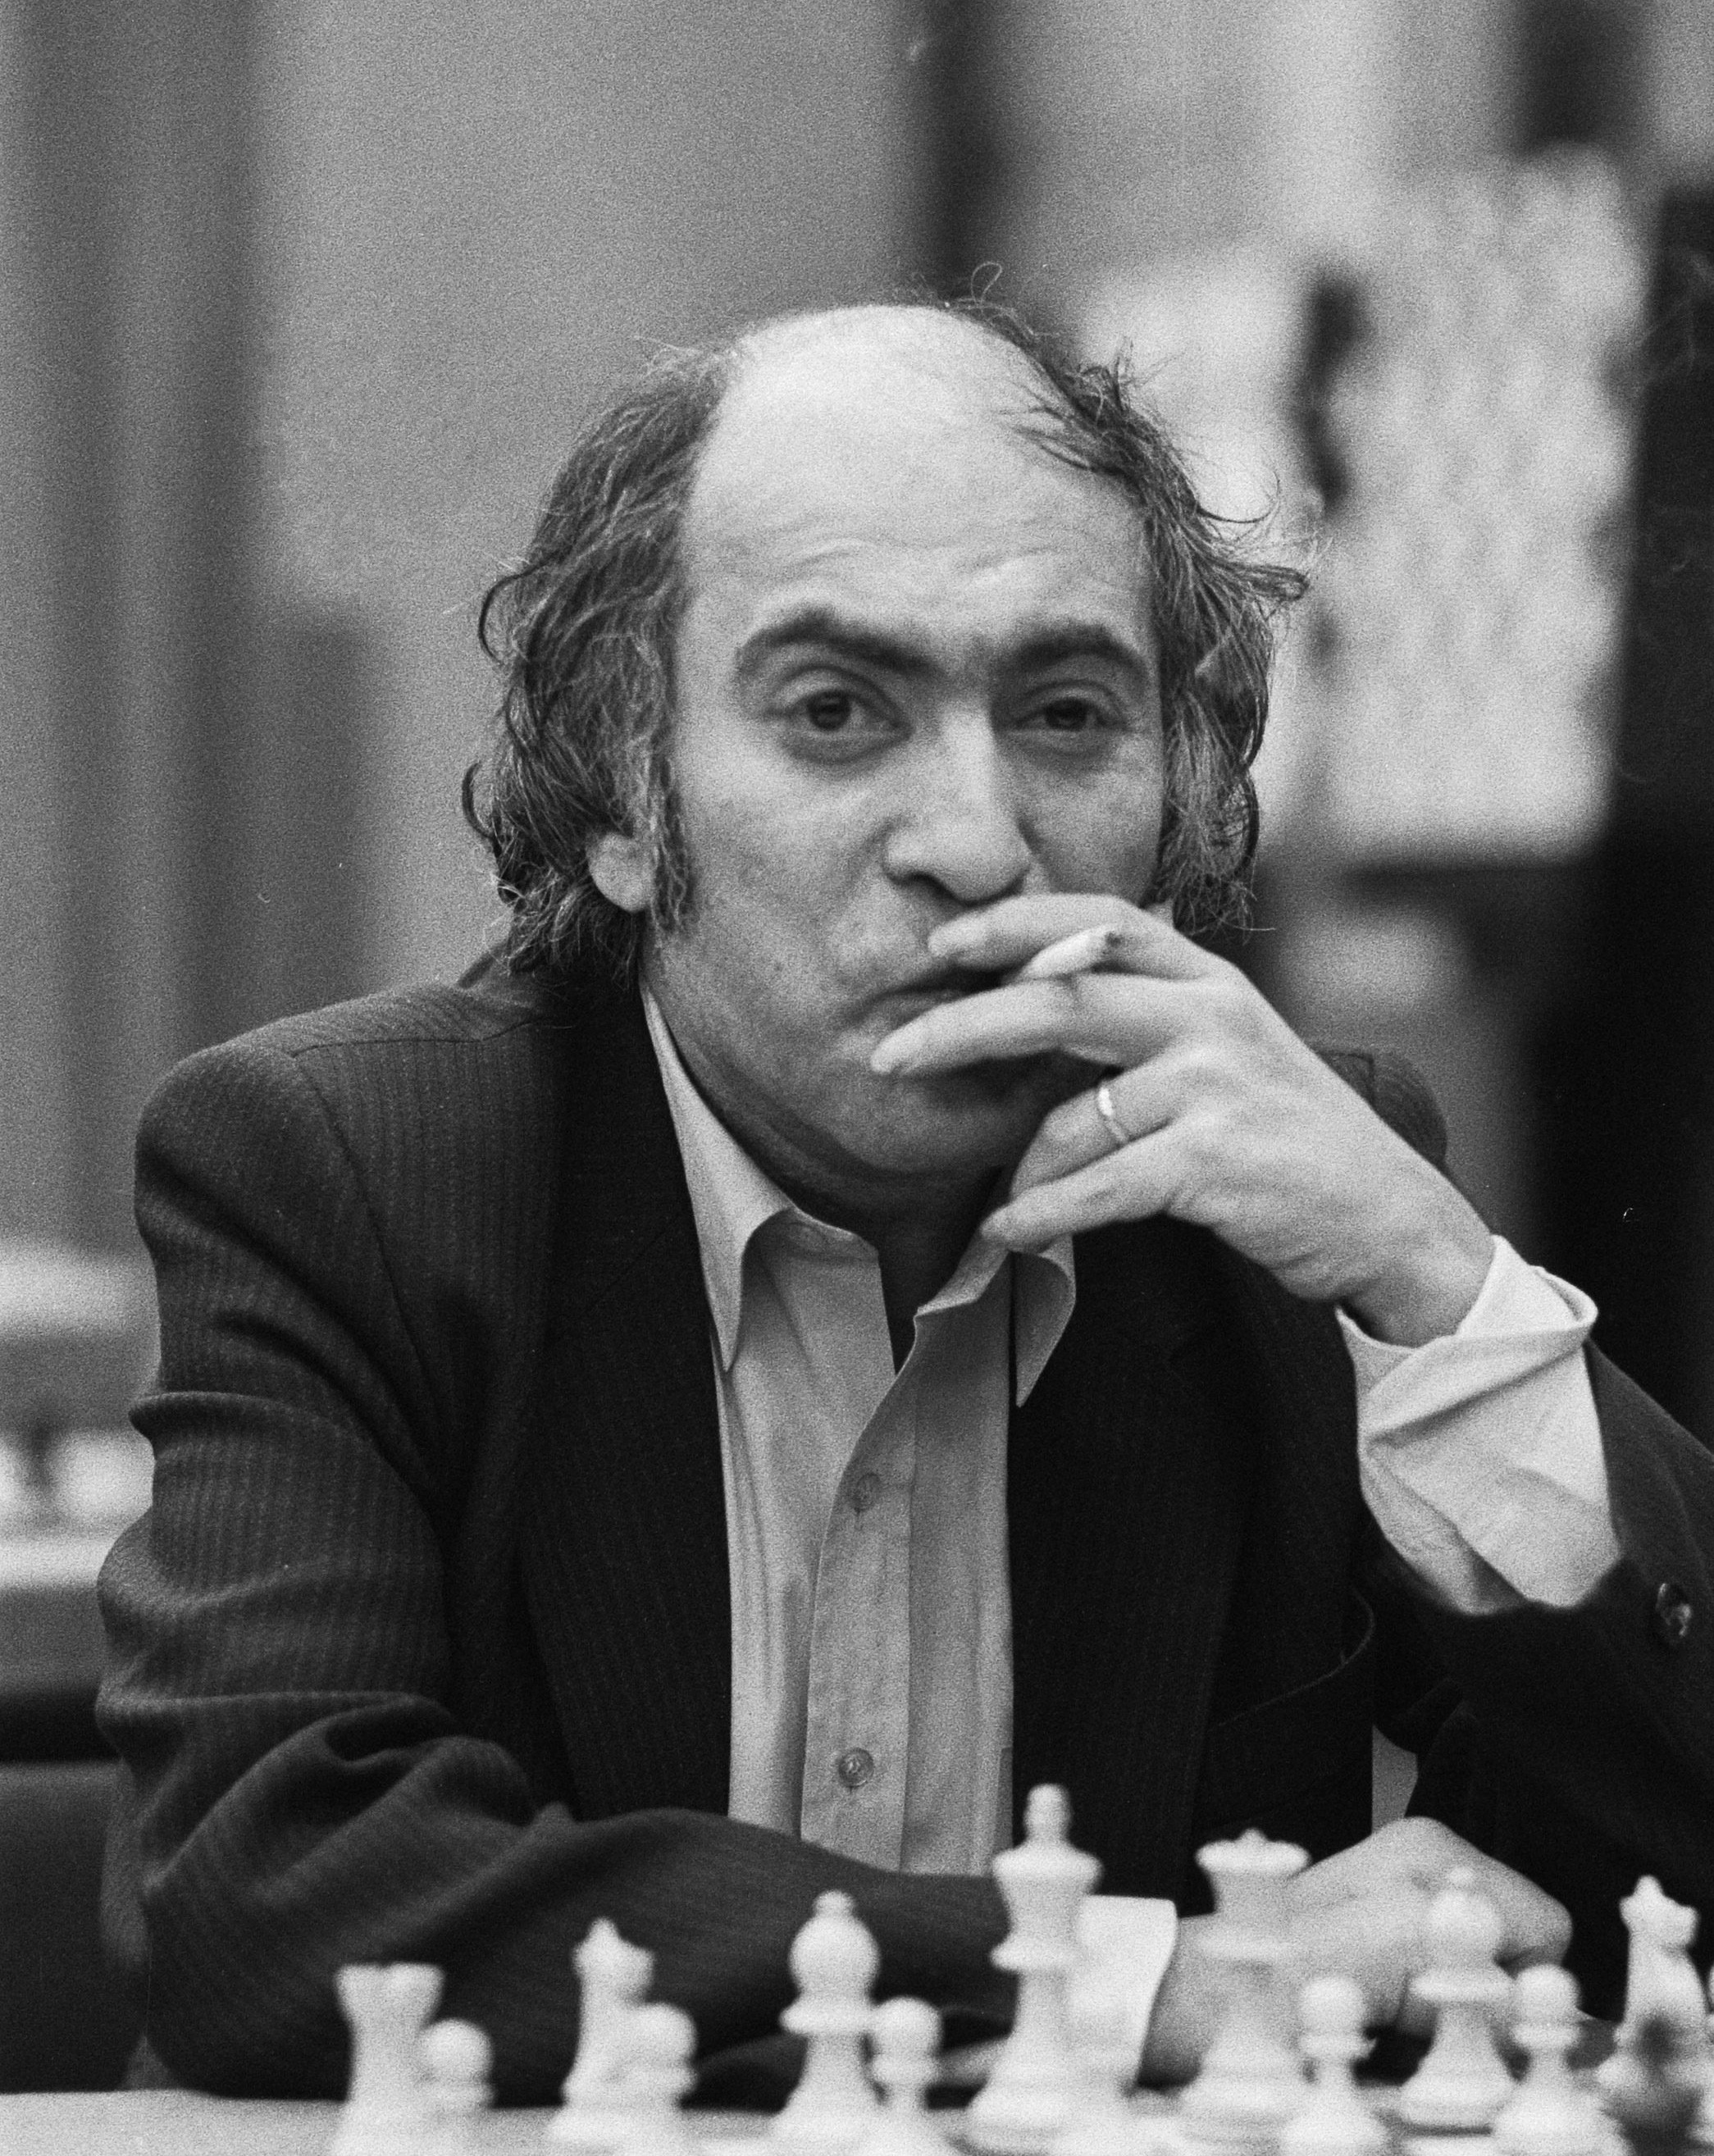 http://upload.wikimedia.org/wikipedia/commons/b/bf/Mikhail_Tal_1982.jpg